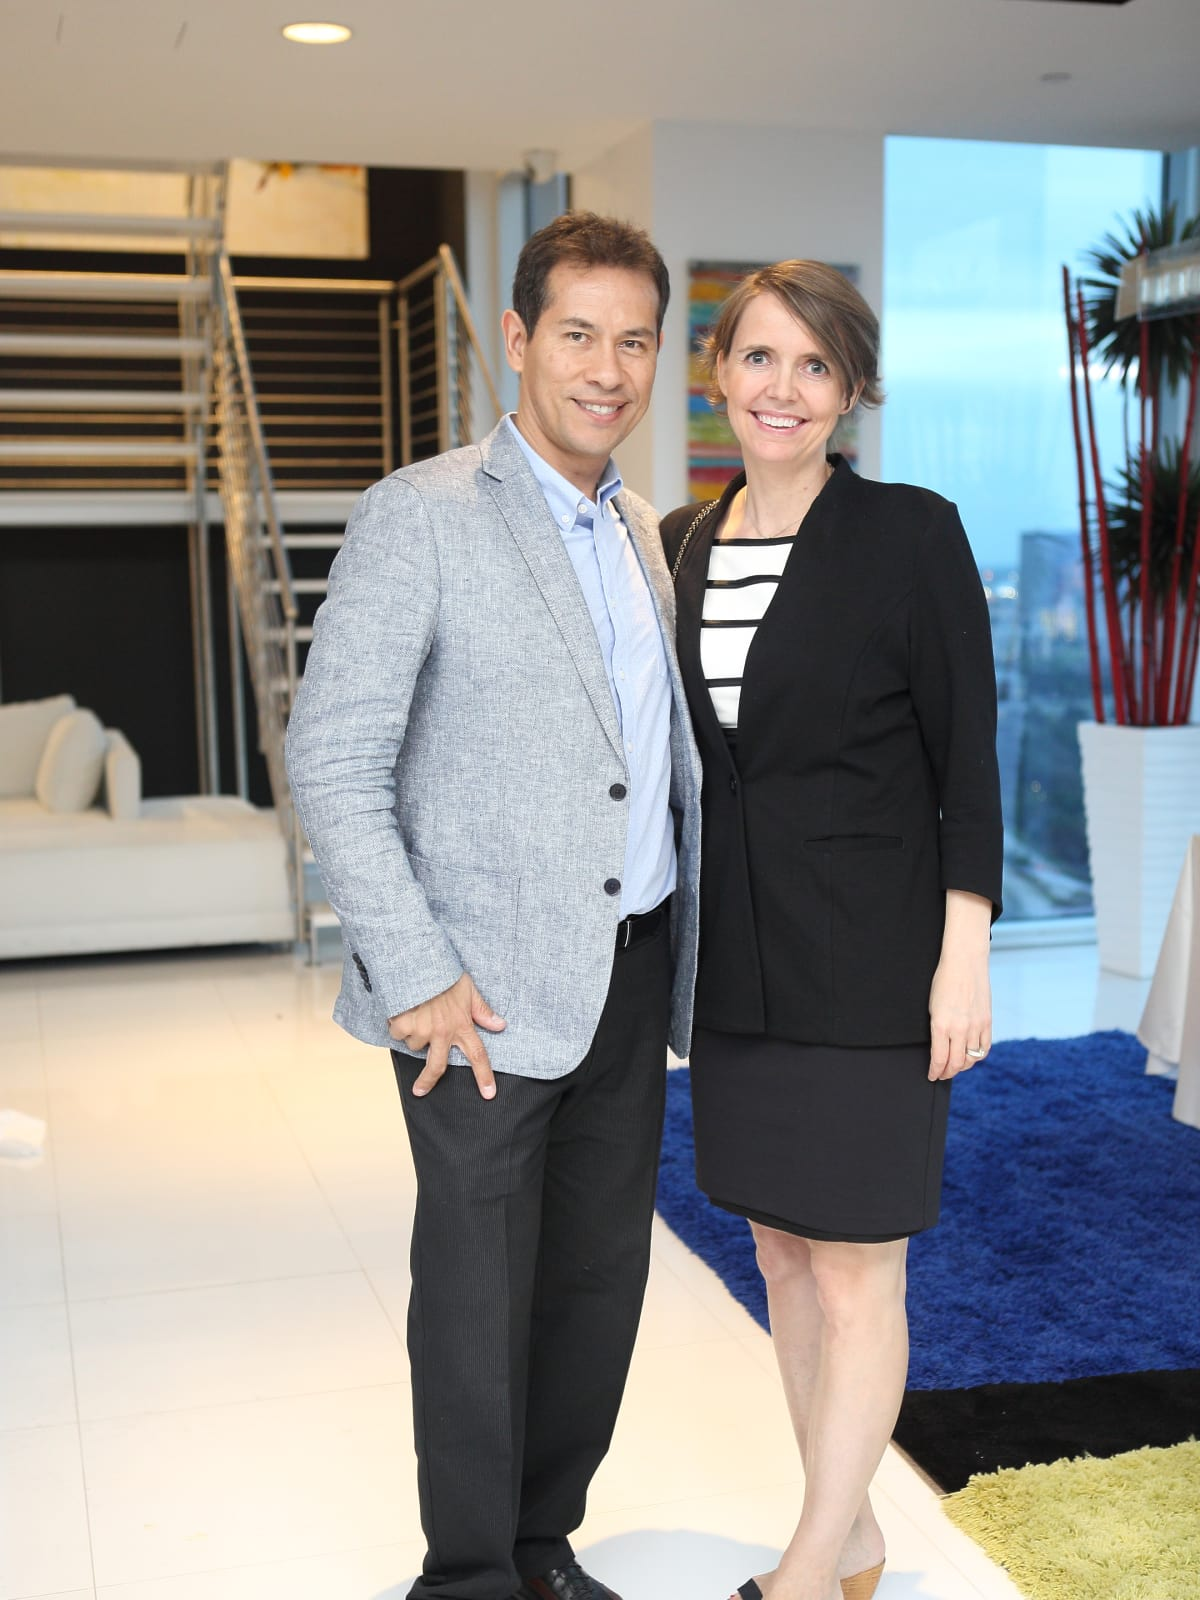 CKW Luxe Star Awards 6/16 Frederico Marques, Cecile Tindlund